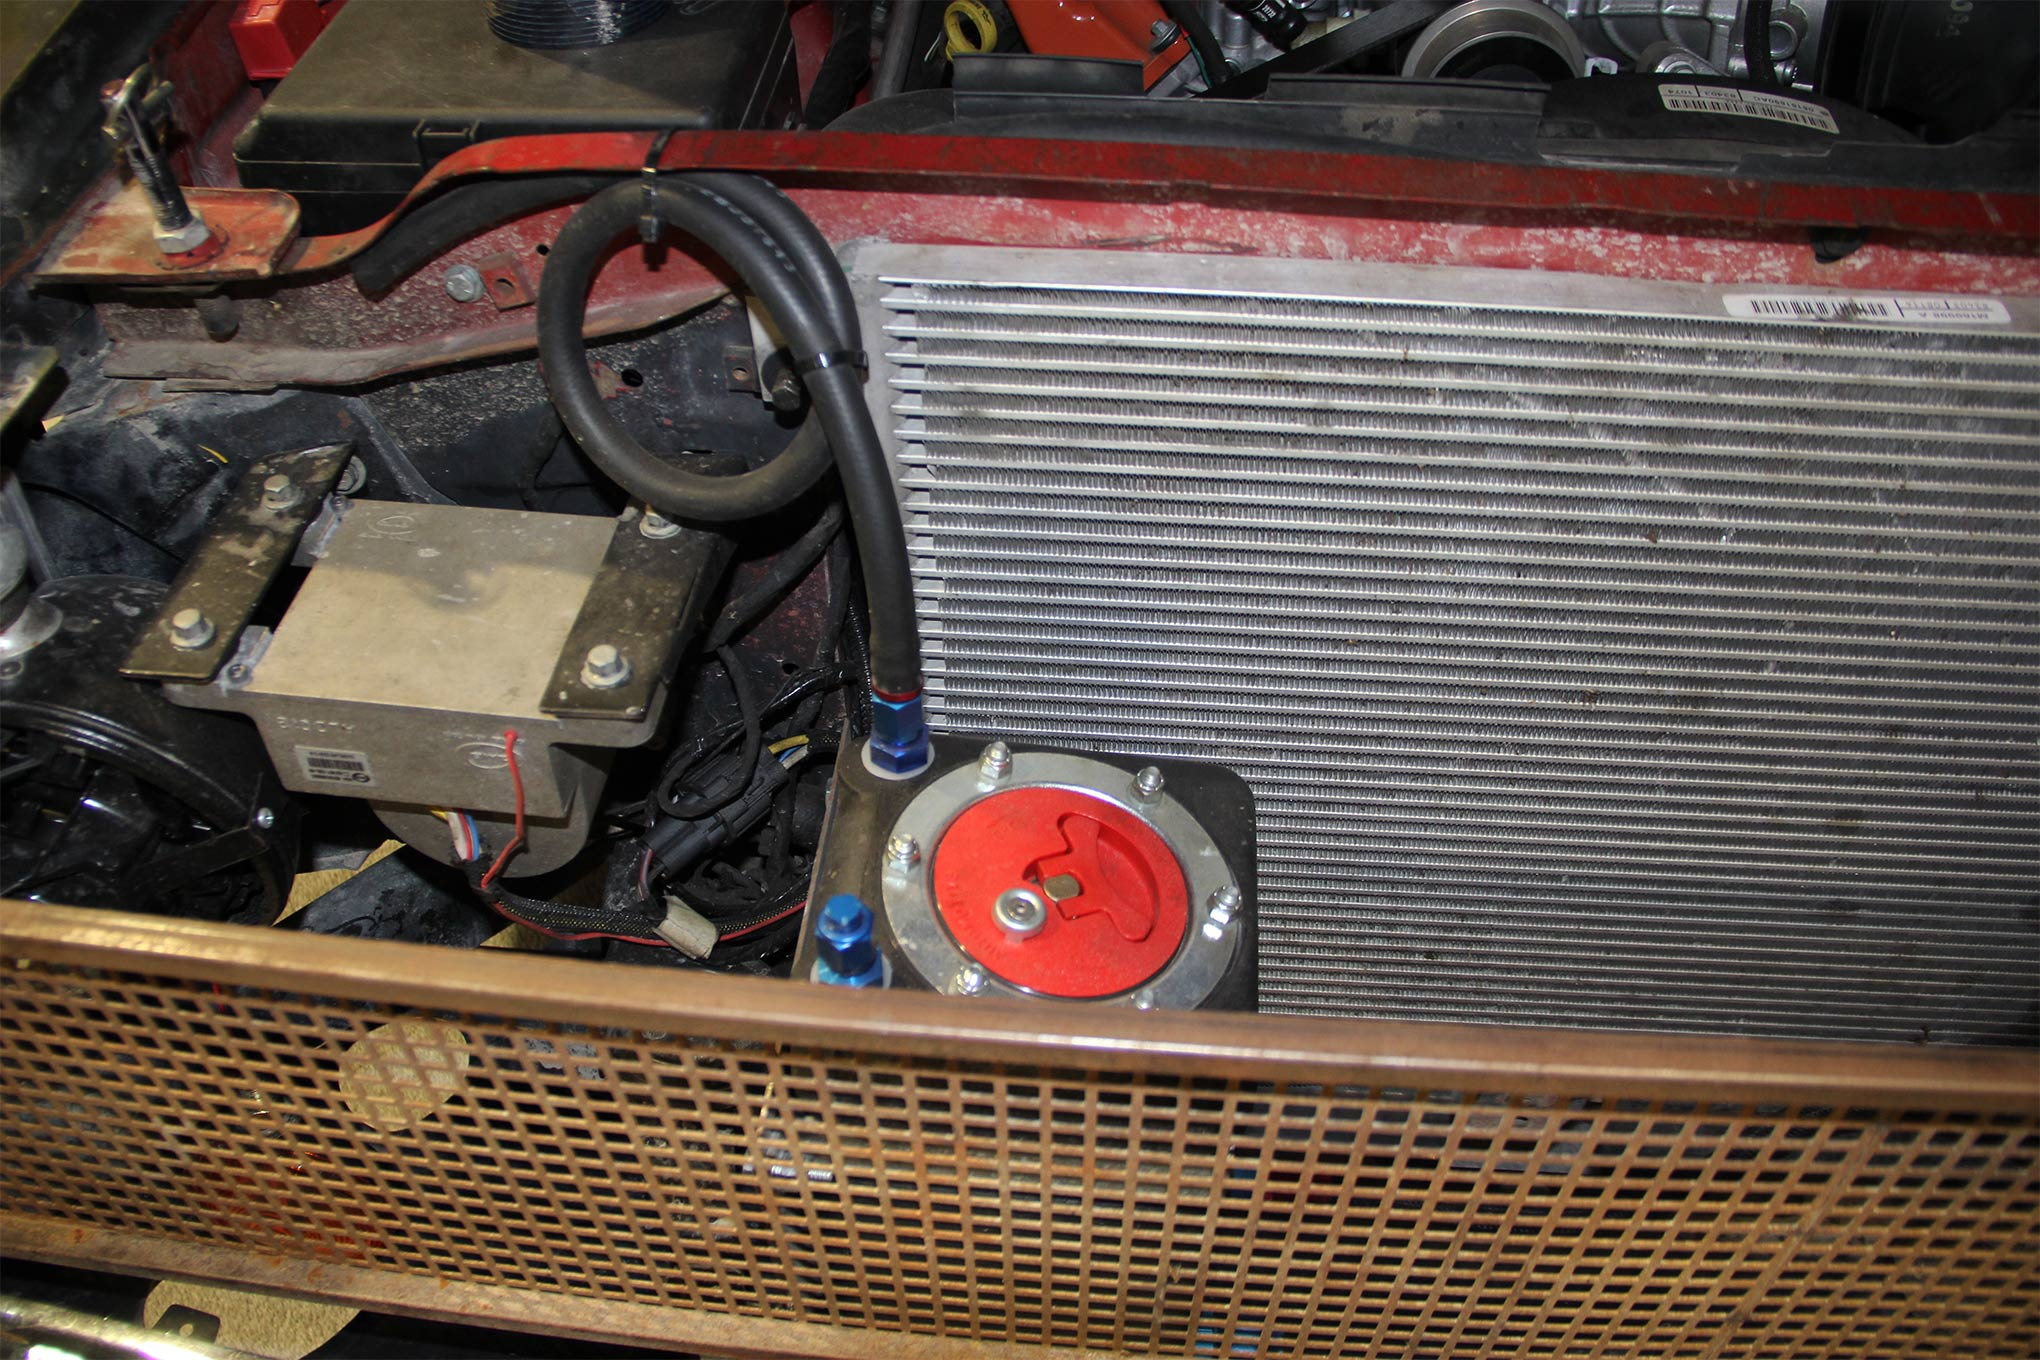 To trick the ECM into thinking it's controlling a stock Hellcat with its many features, Diversified even installed and wired in the ABS brake controller, though it doesn't control anything. Removing it from the overall system did not allow the engine to start.